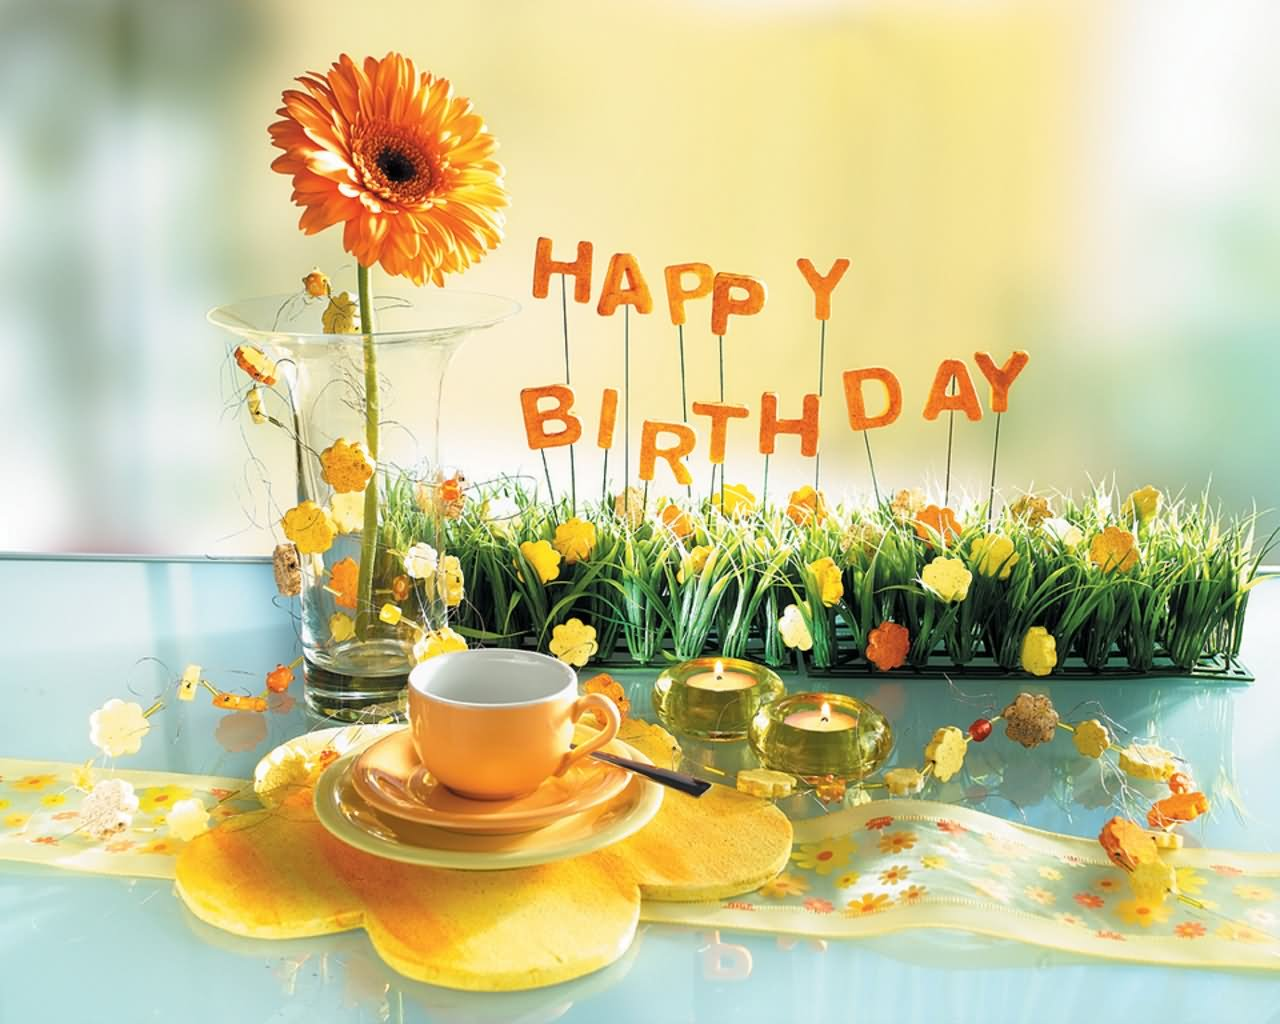 Wish You Very Happy Birthday Flower Picture